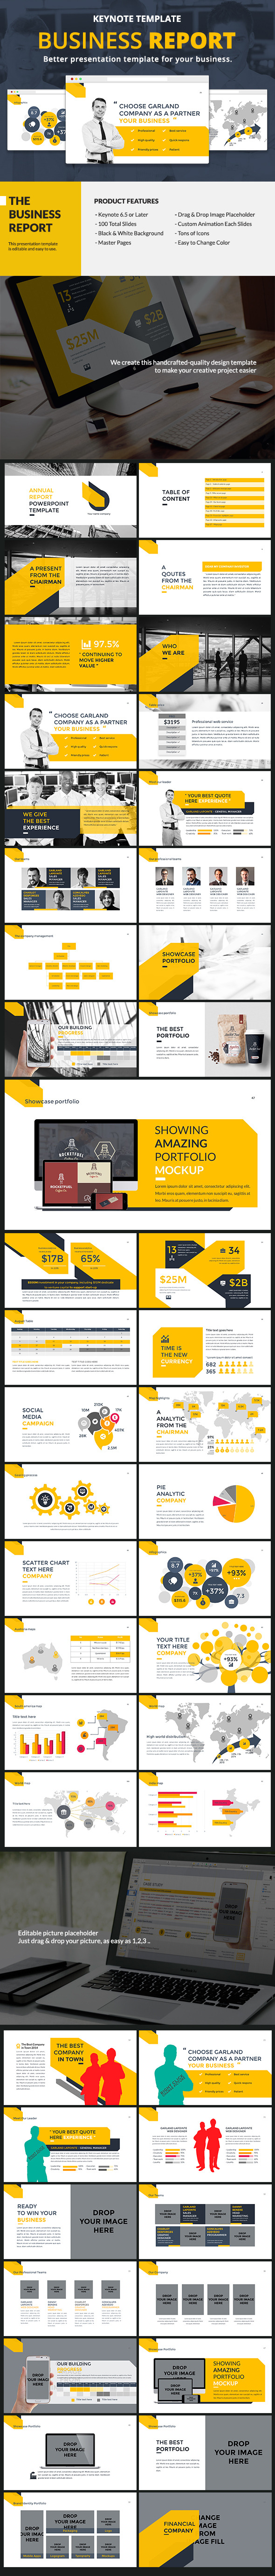 Business Report Keynote - Business Keynote Templates